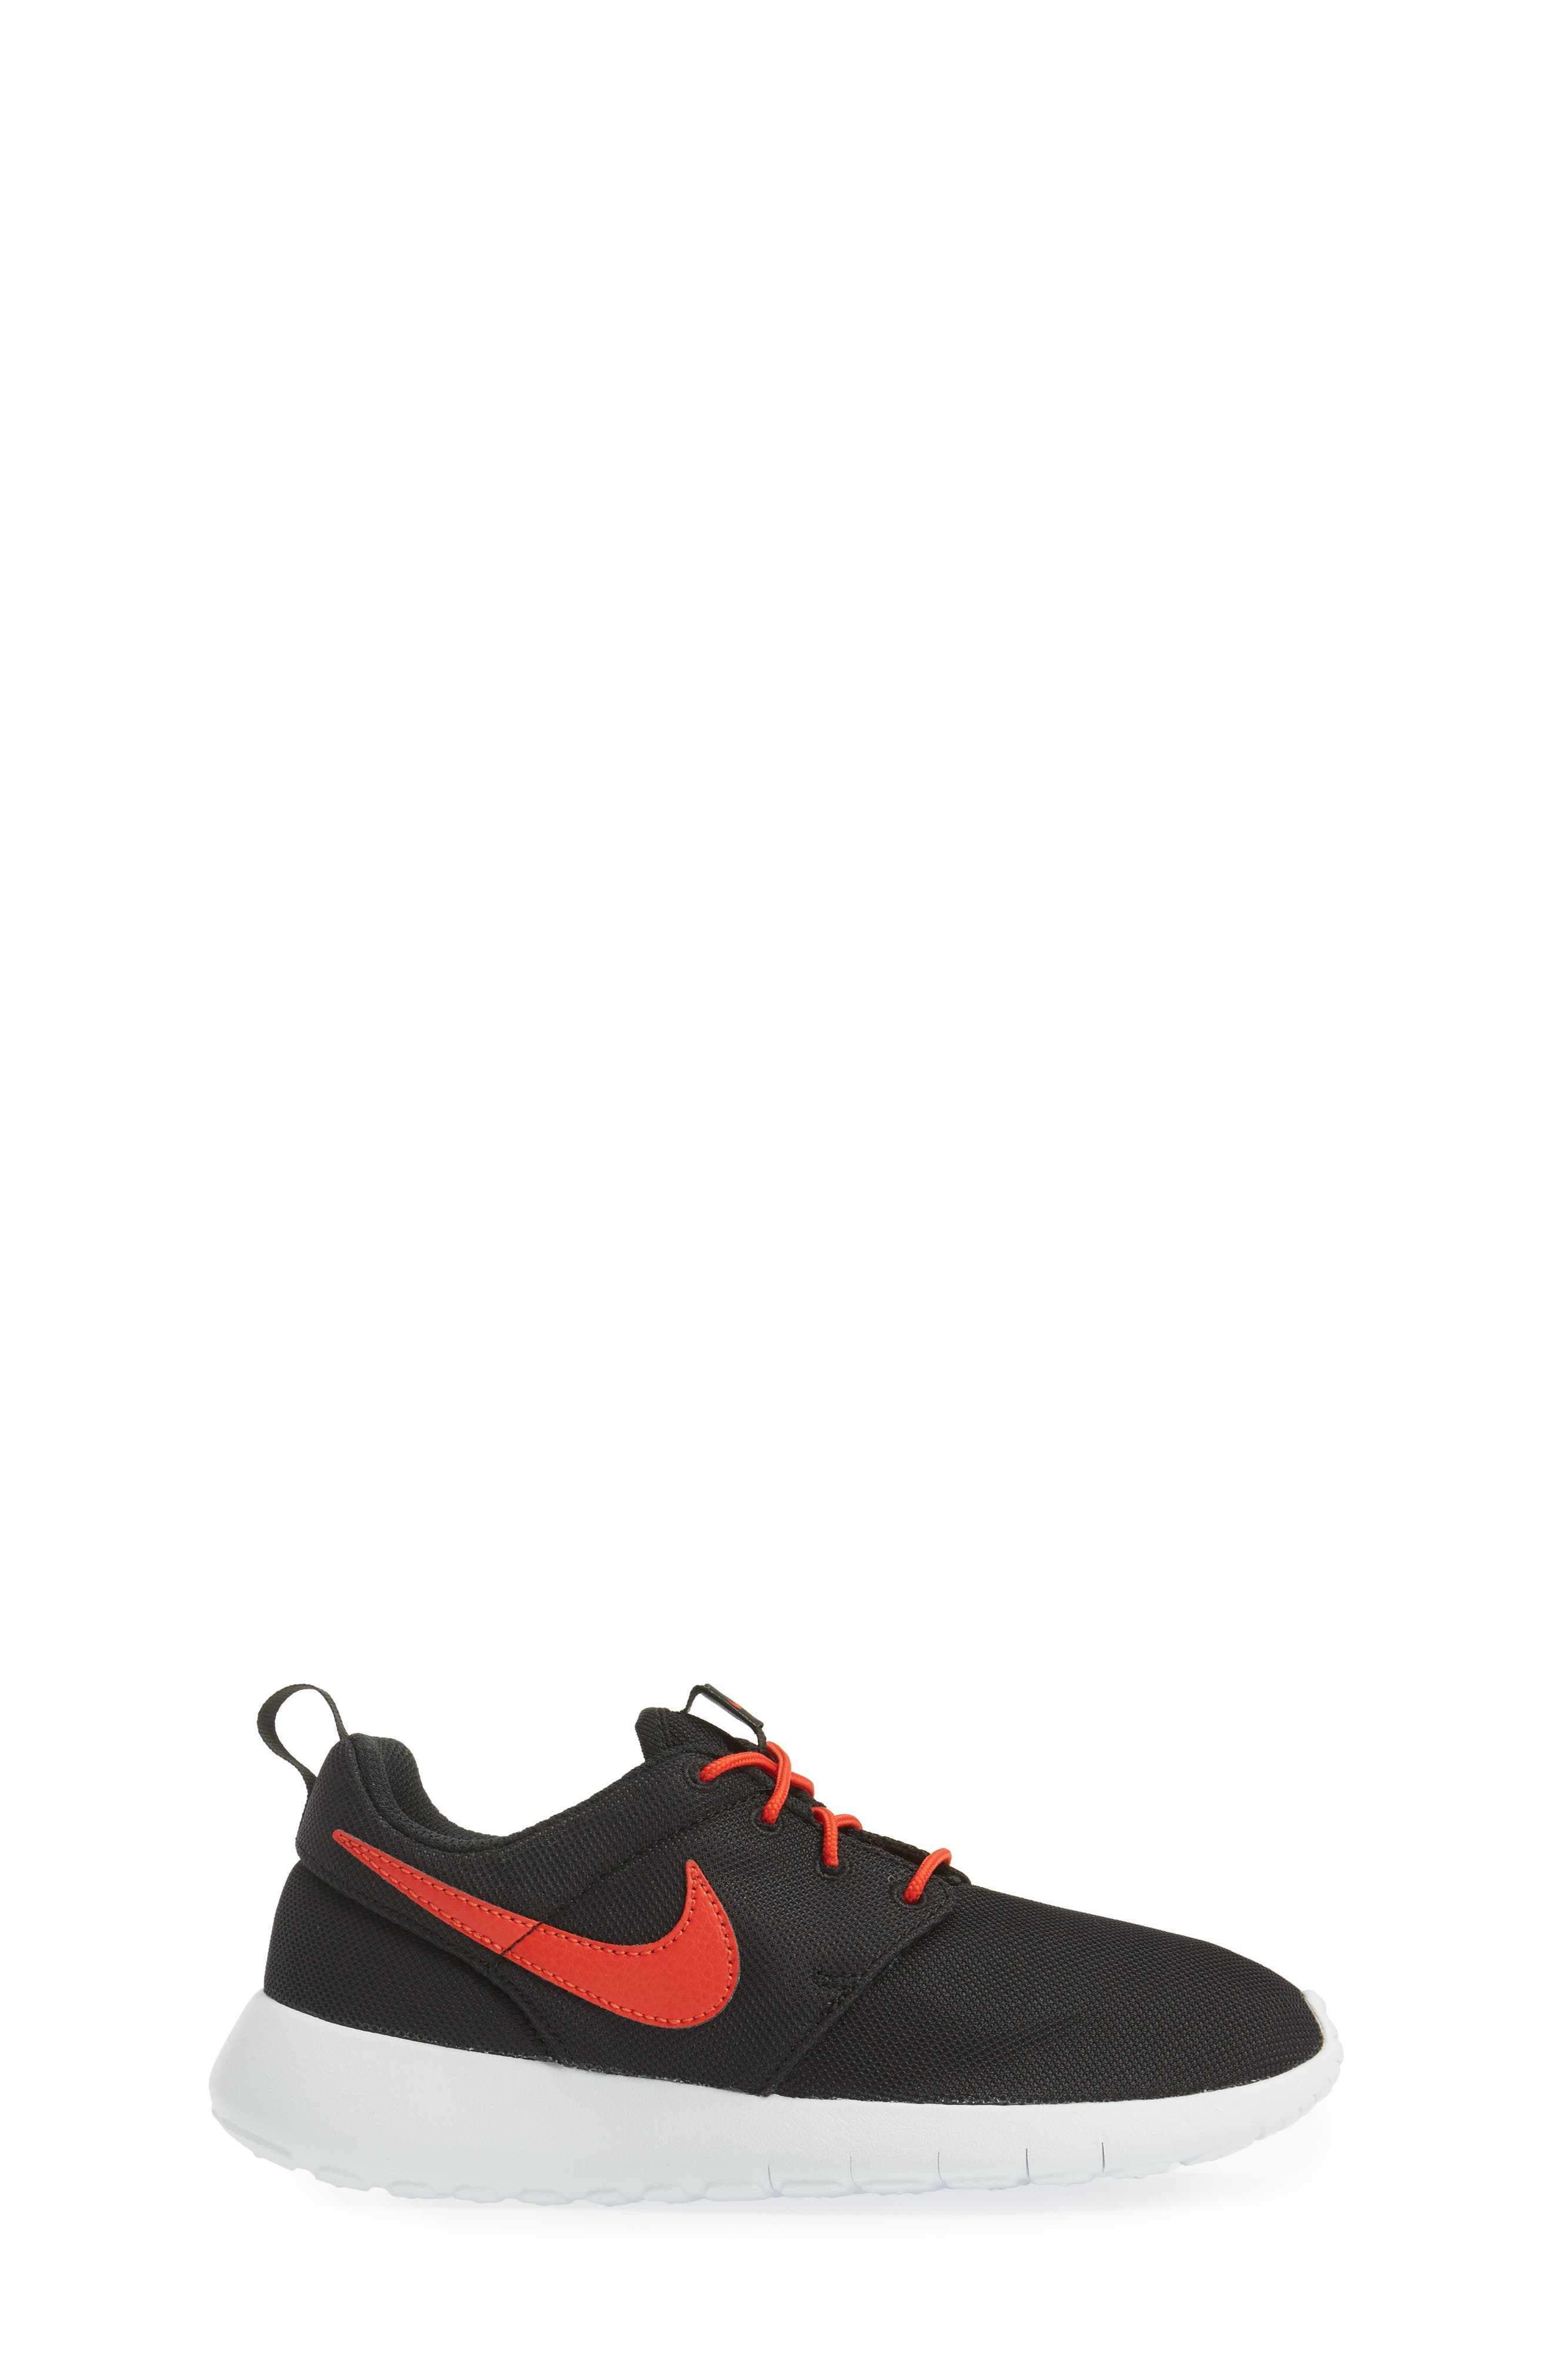 'Roshe Run' Sneaker,                             Alternate thumbnail 111, color,